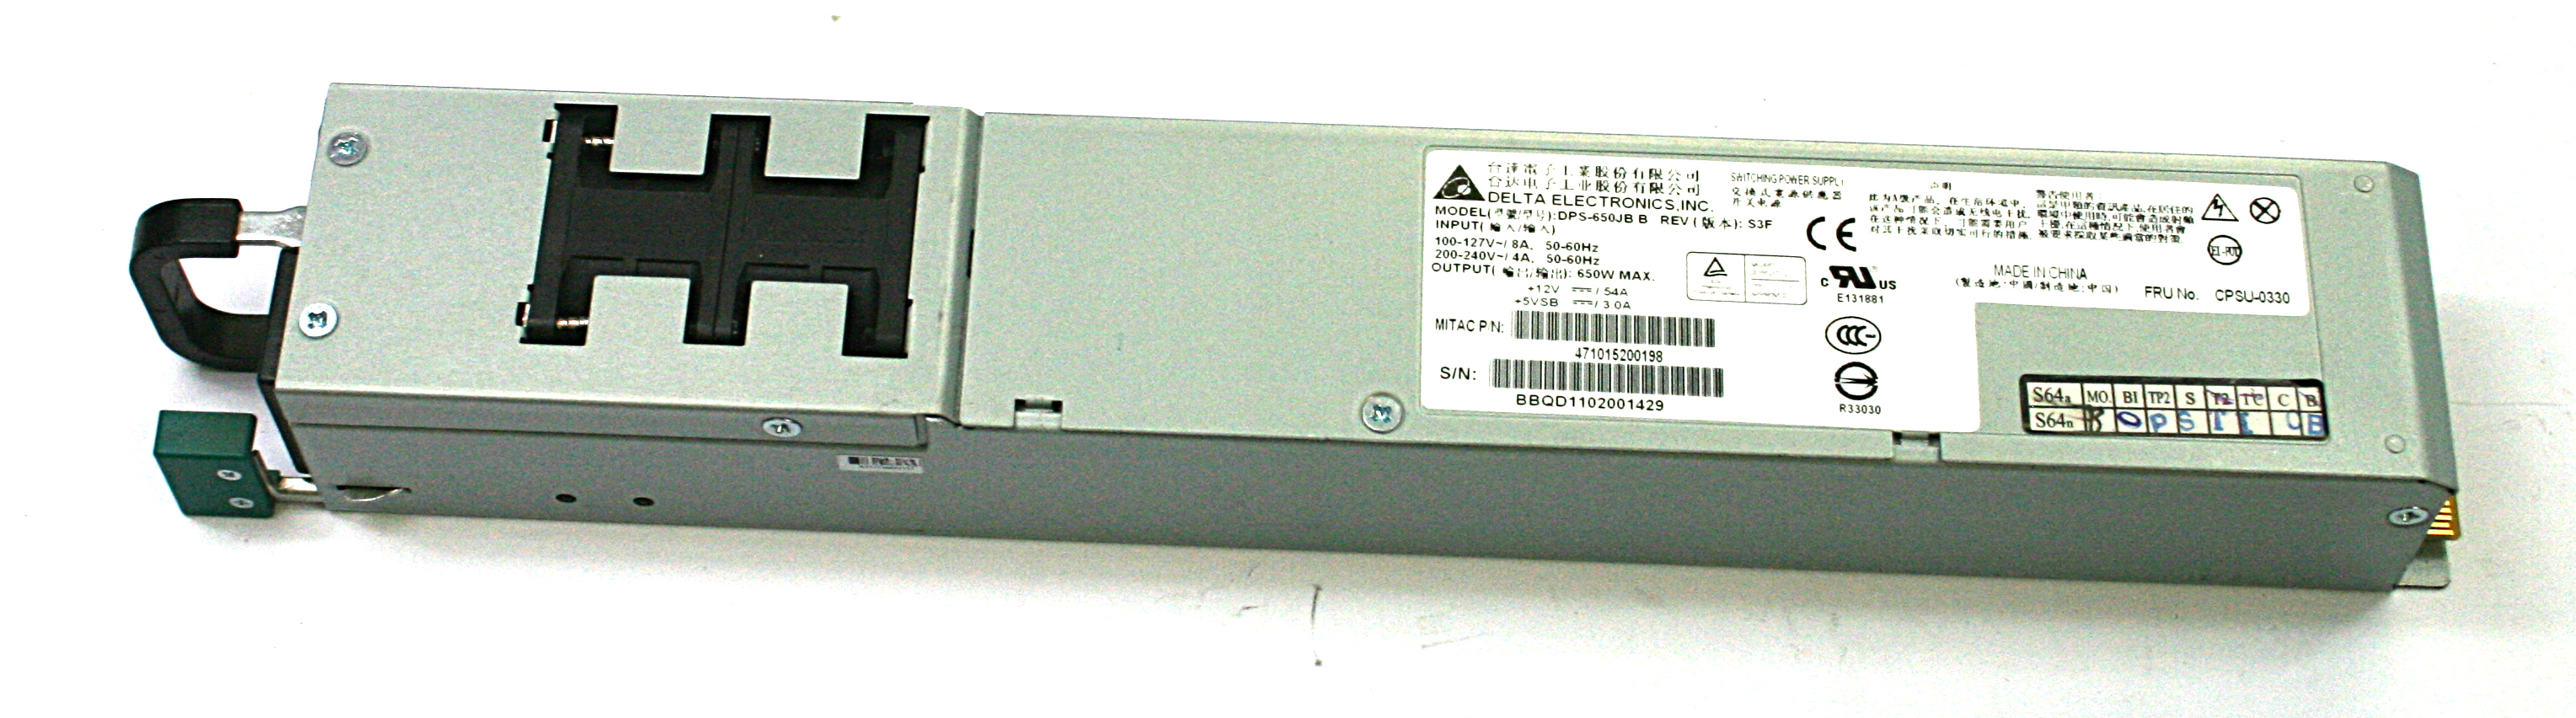 Delta Electronics DPS-650JB B Rev:S3F 650W Power Supply  PSU